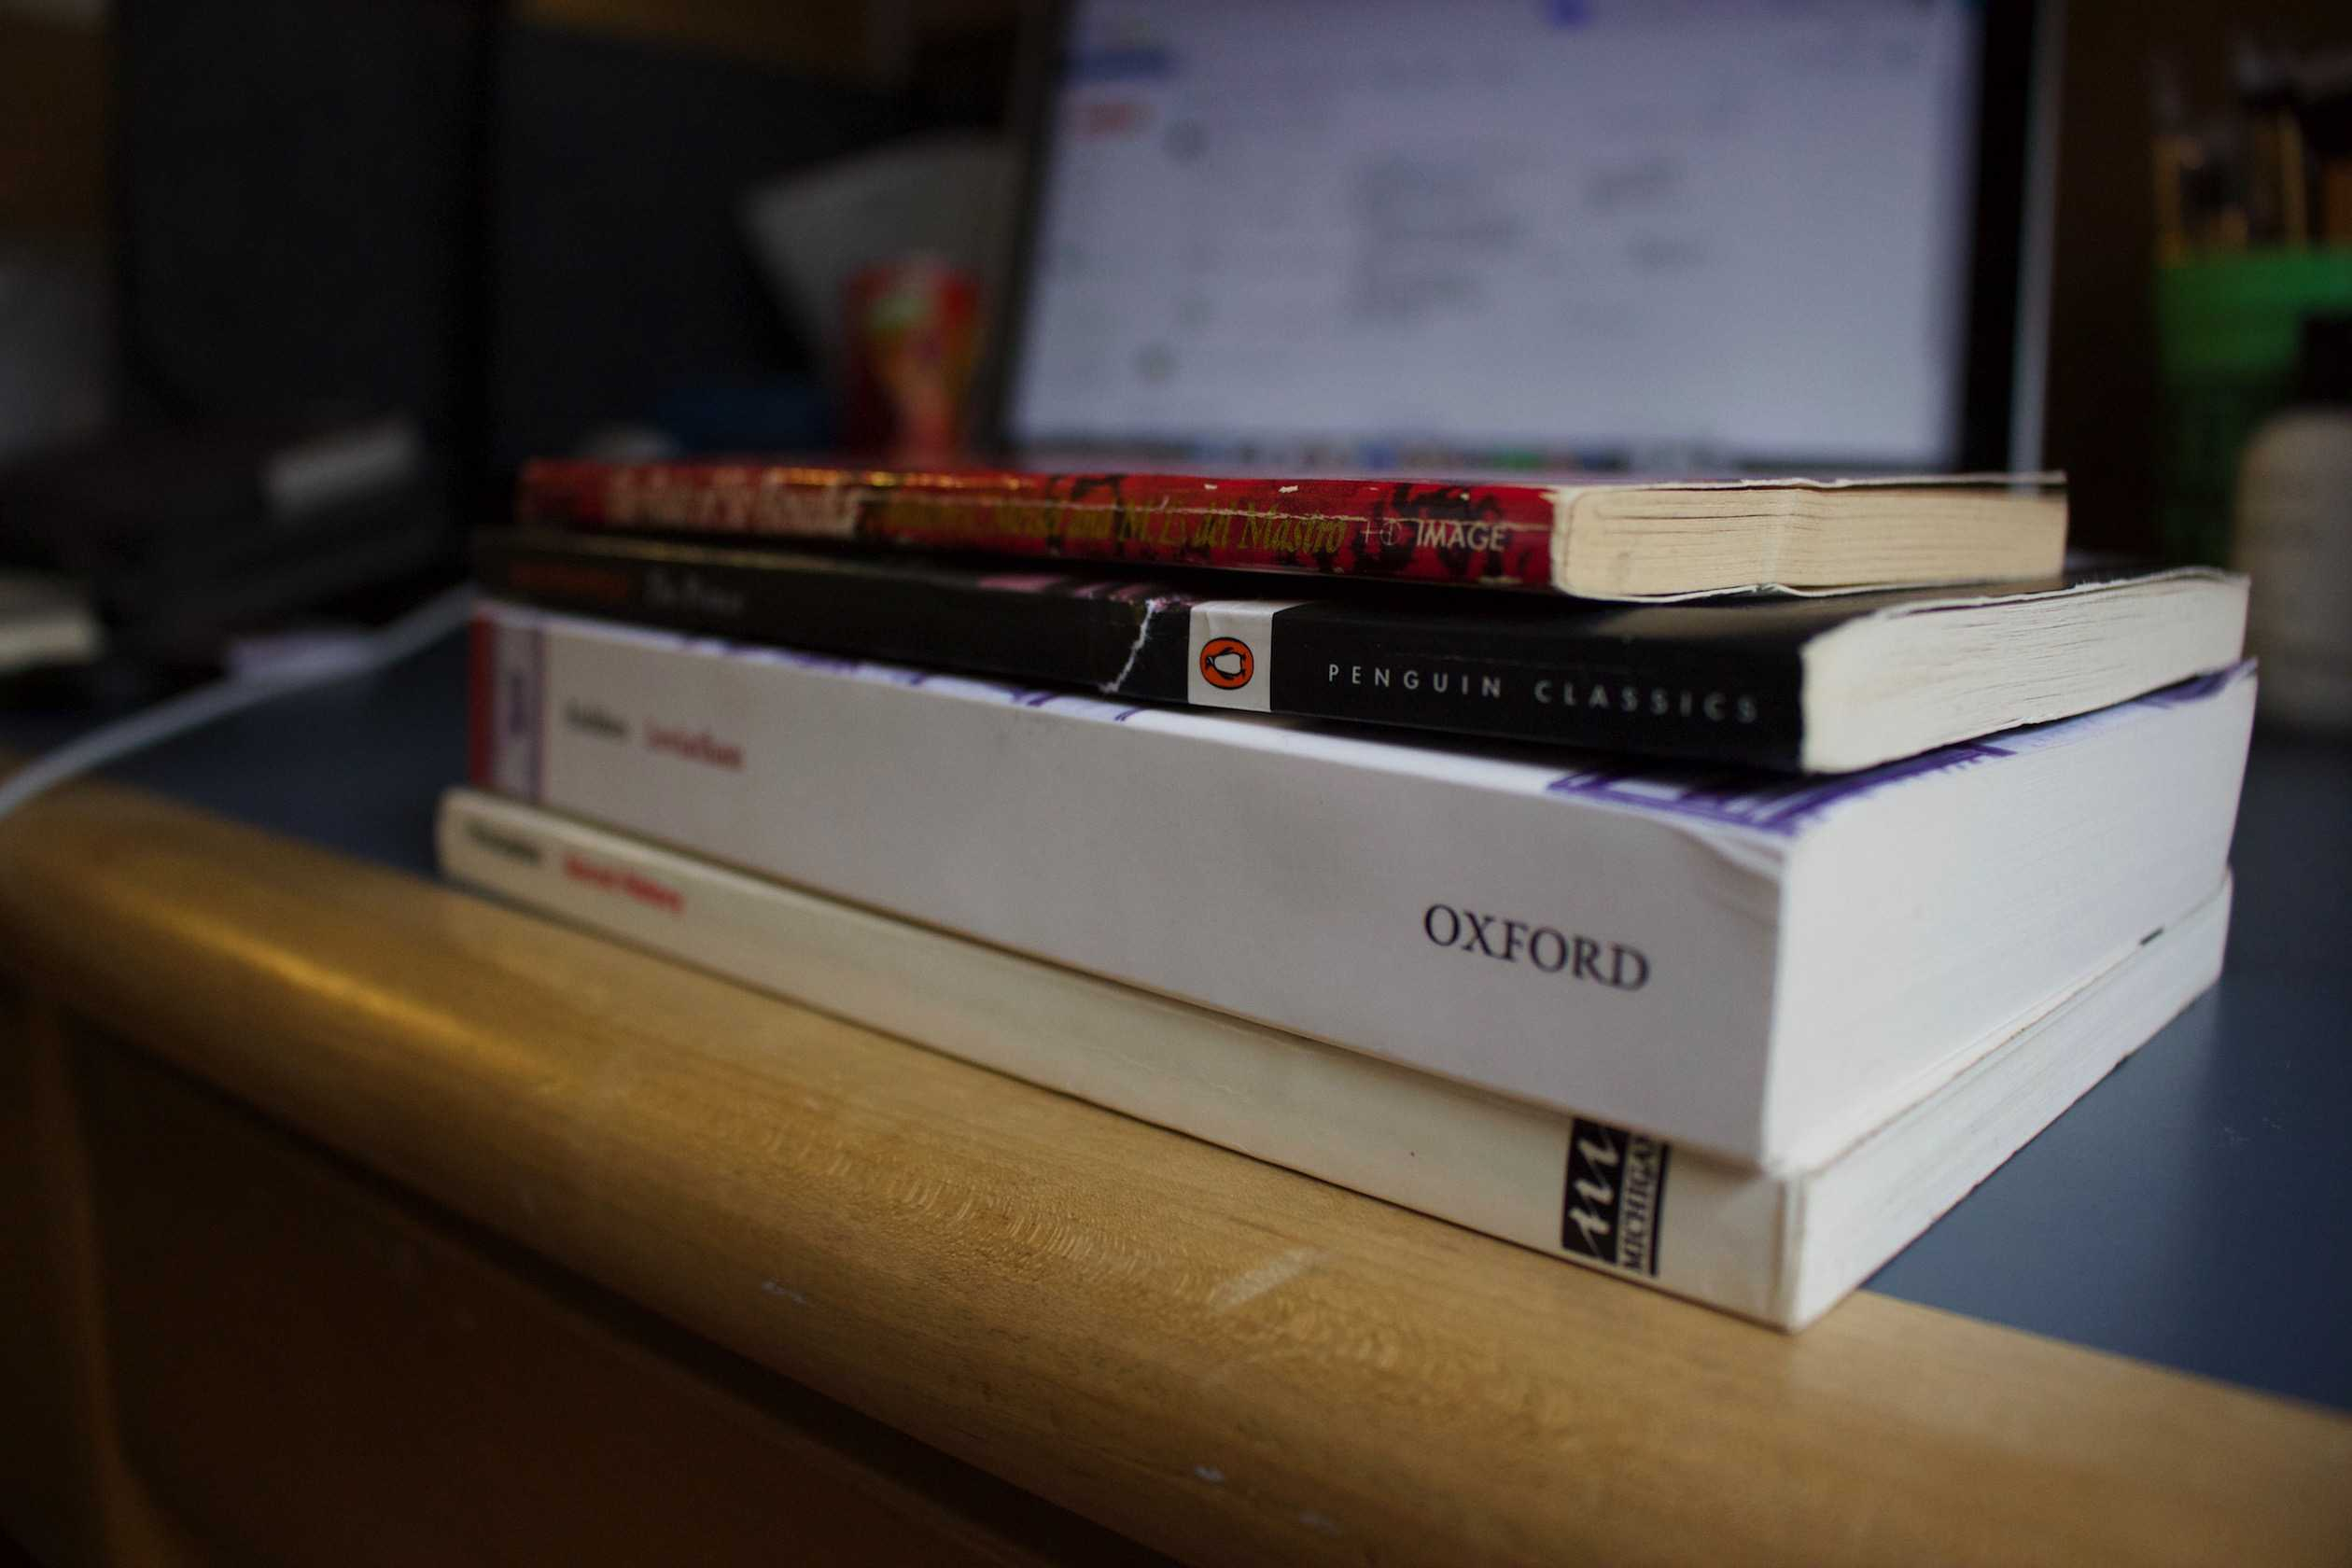 There are a multitude of secondhand textbook sellers, both online and in store, for NYU students to take advantage of.